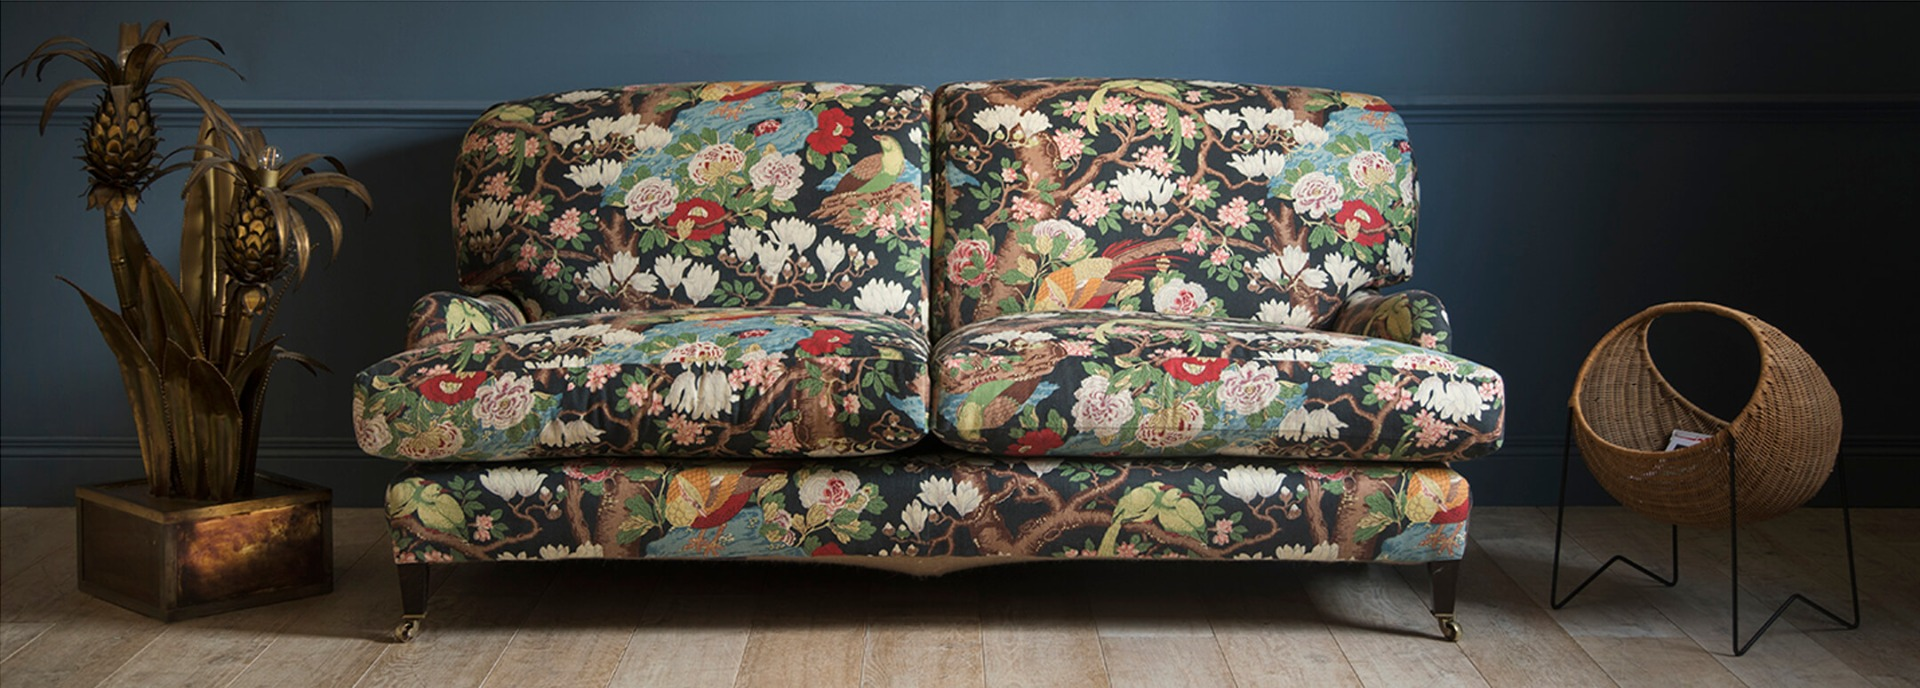 Lorfords Created Bespoke Traditional British Upholstery